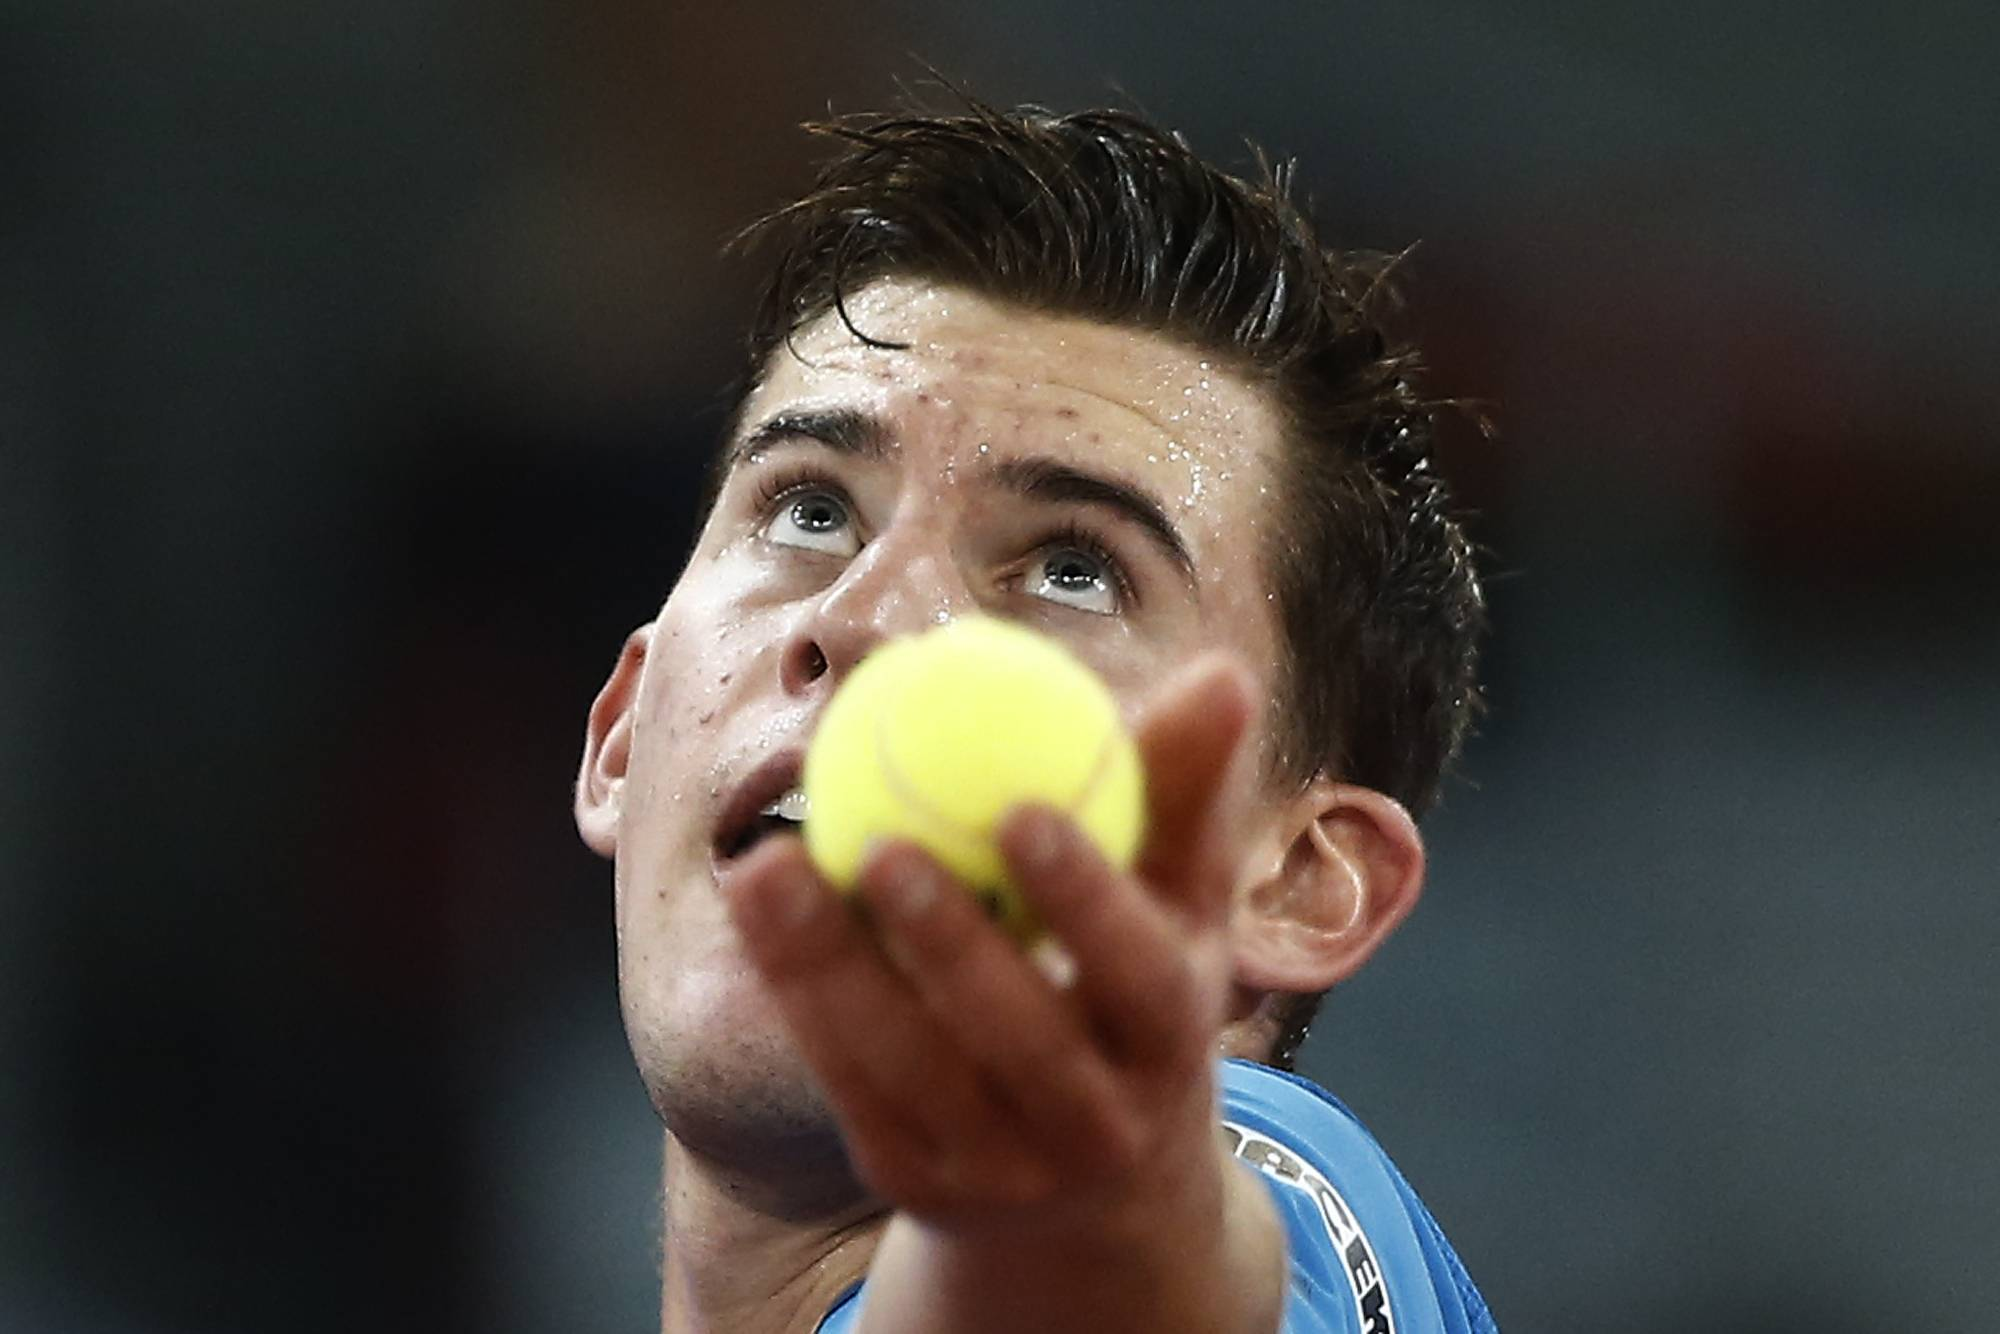 Dominic Thiem from Austria serves during a Madrid Open tennis tournament match against Stanislas Wawrinka from Switzerland, in Madrid, Spain, Tuesday, May 6, 2014.